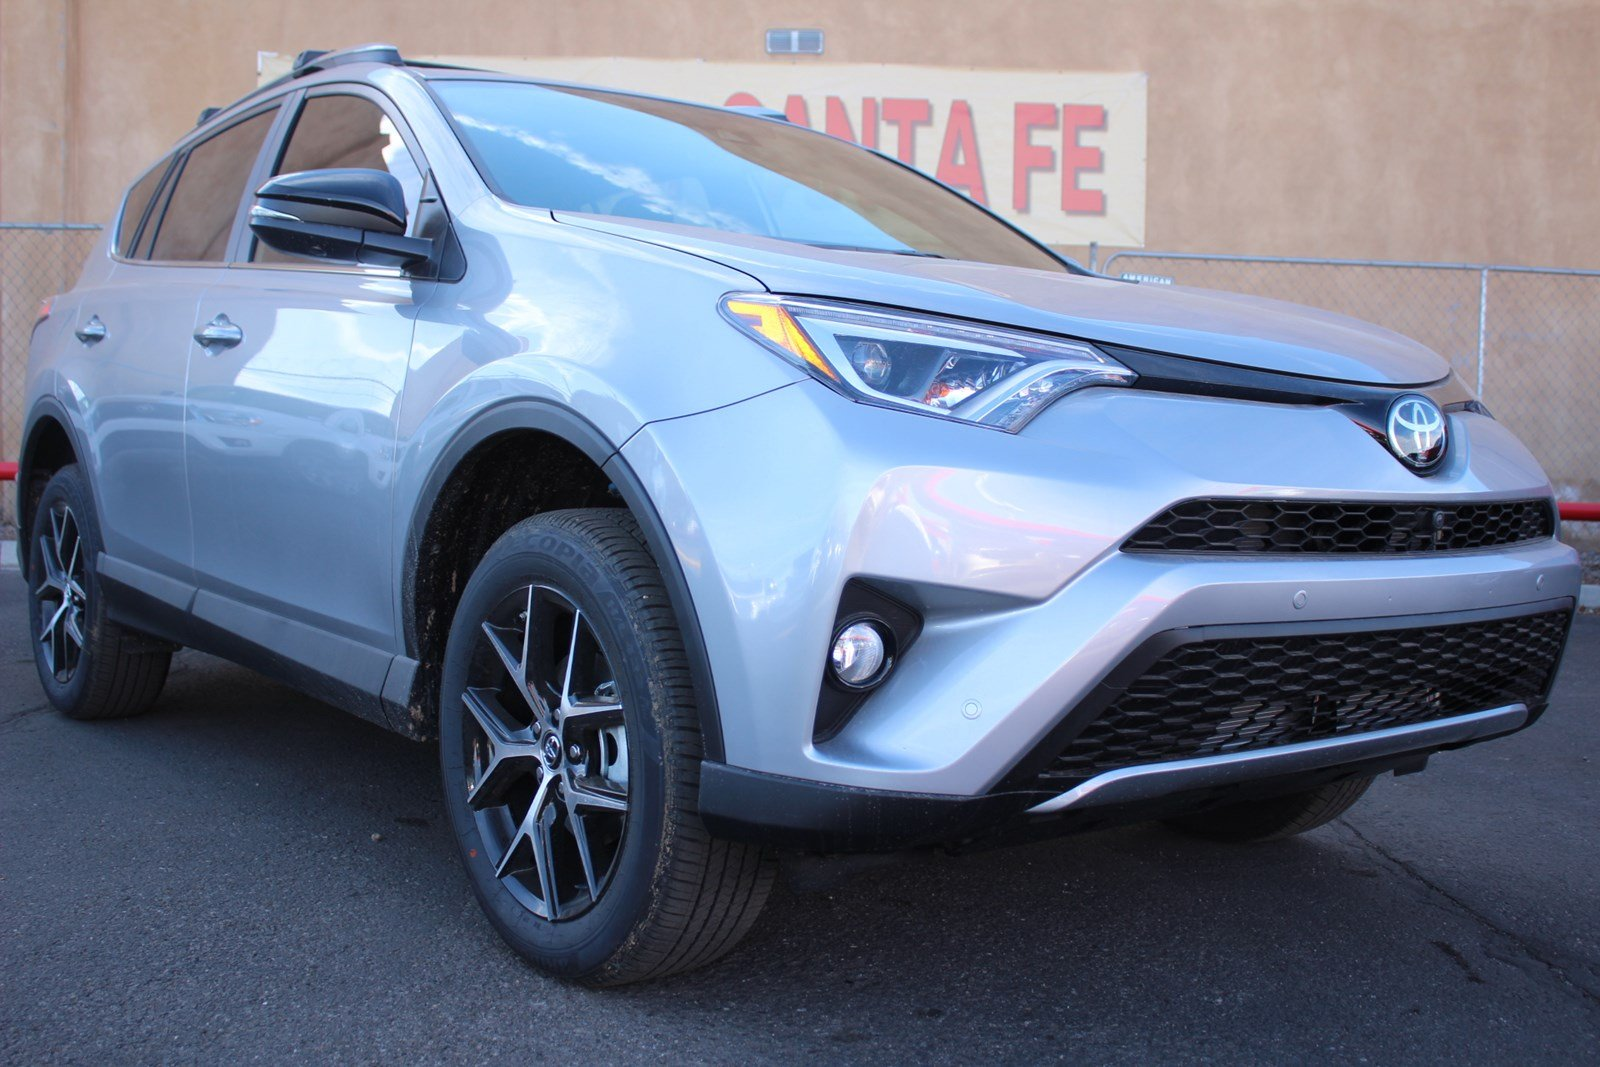 new 2017 toyota rav4 se sport utility vehicle in santa fe hw593189 toyota of santa fe. Black Bedroom Furniture Sets. Home Design Ideas